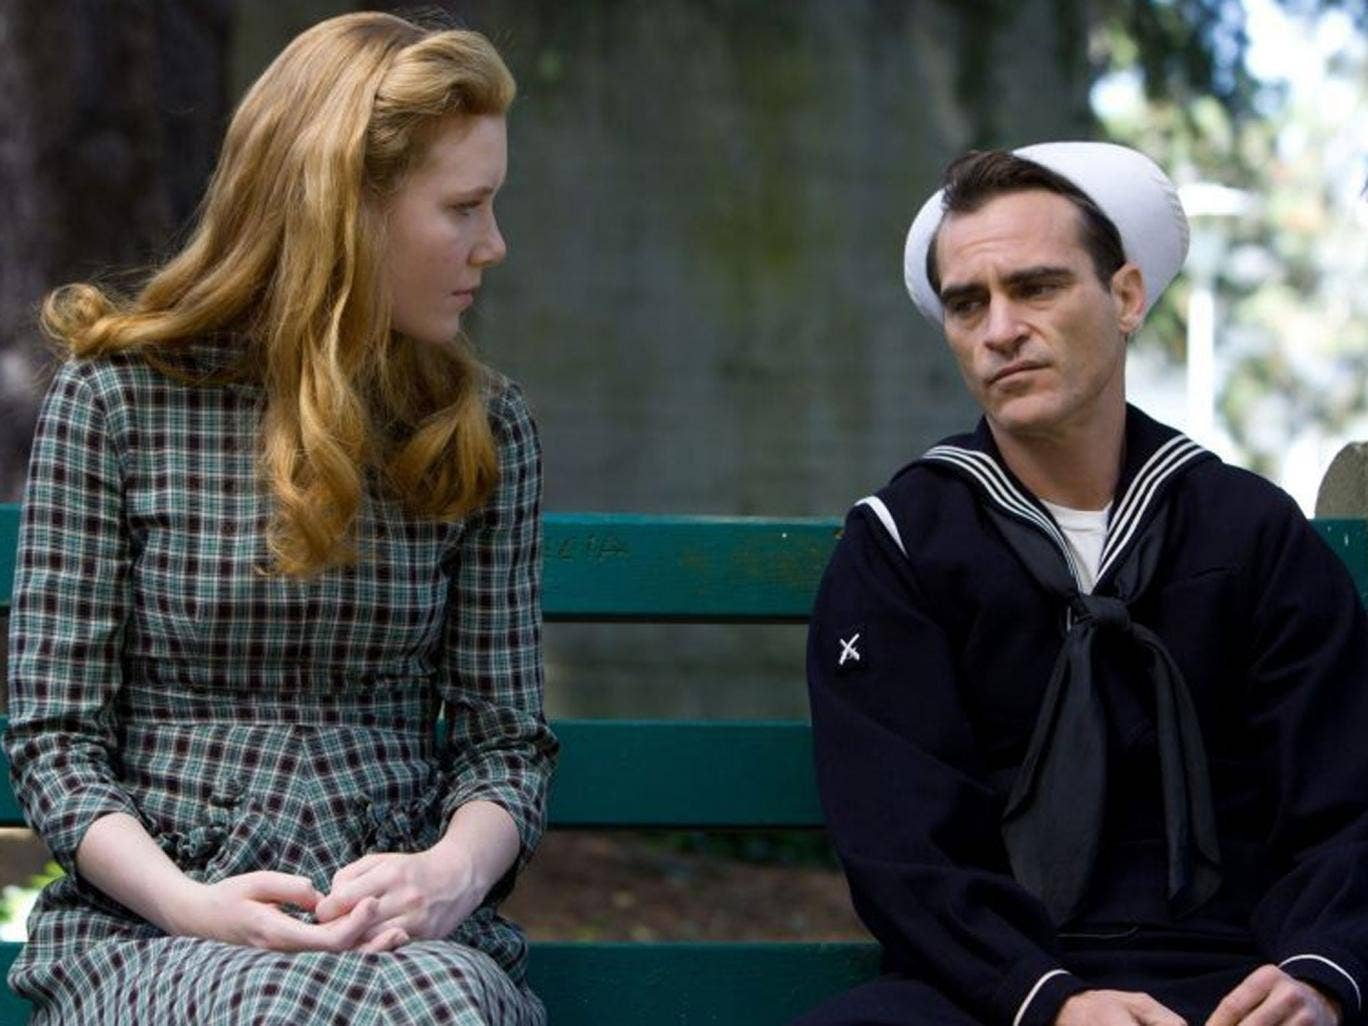 Joaquin Phoenix (left) and Amy Adams in The Master